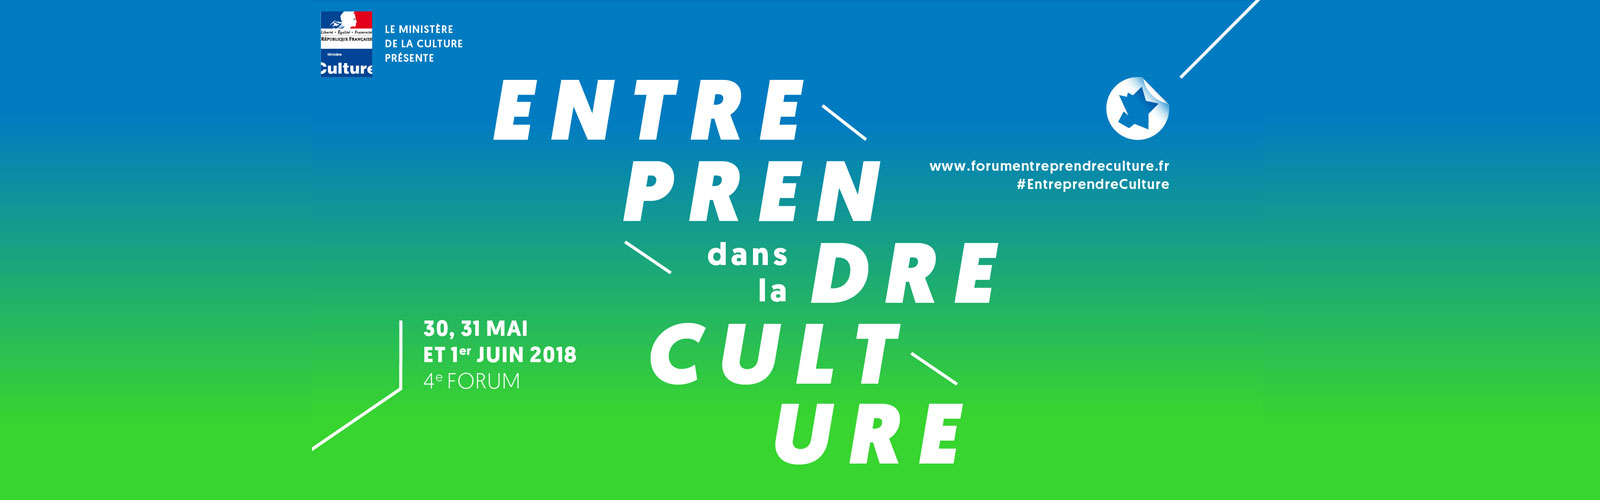 entreprendre-culture-2018